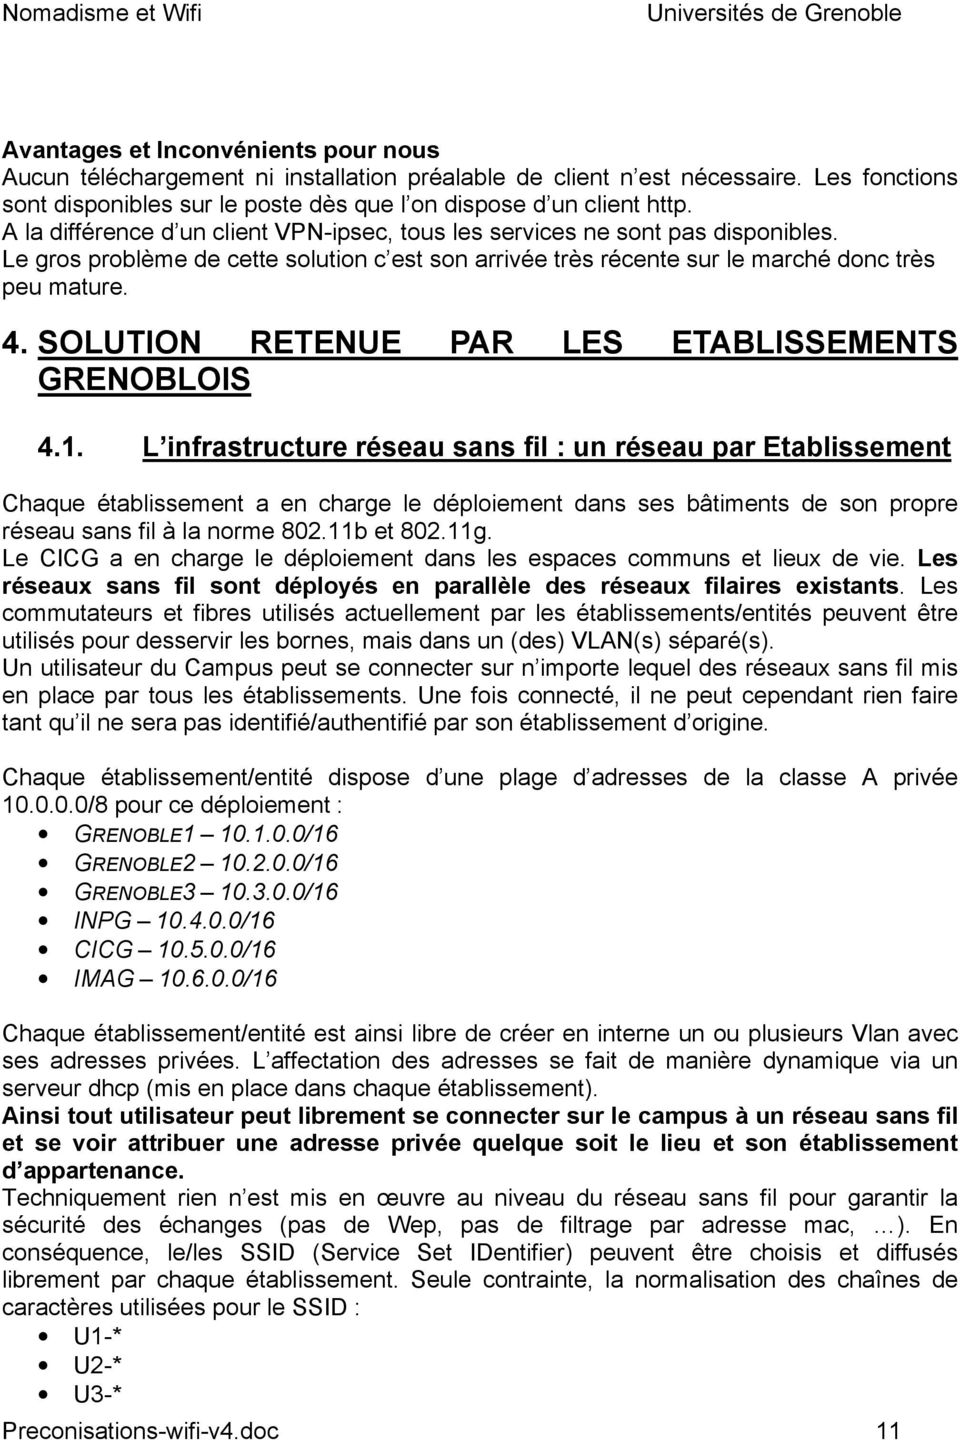 SOLUTION RETENUE PAR LES ETABLISSEMENTS GRENOBLOIS 4.1.